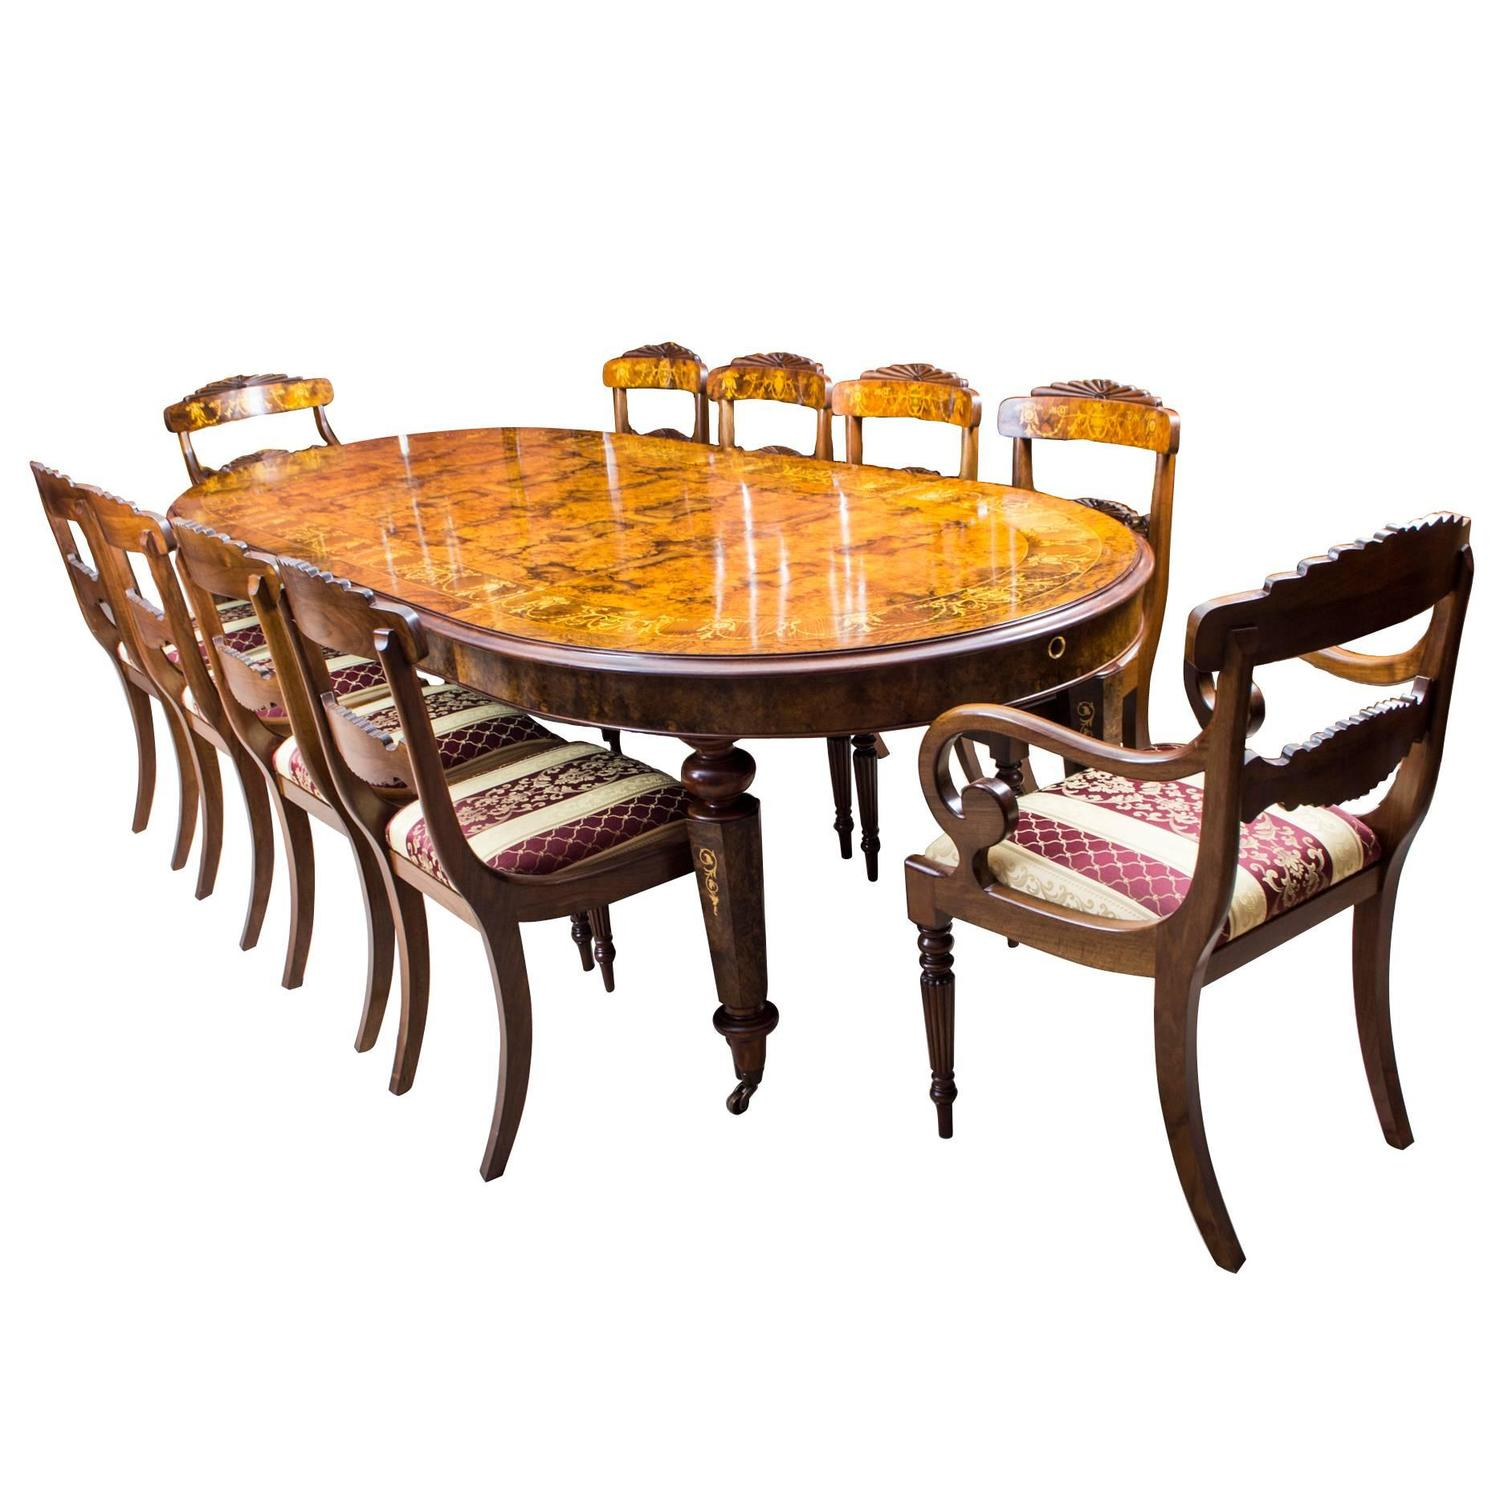 10 Seat Dining Table Set Stunning Bespoke Handmade Burr Walnut Marquetry Dining Table 10 Chairs